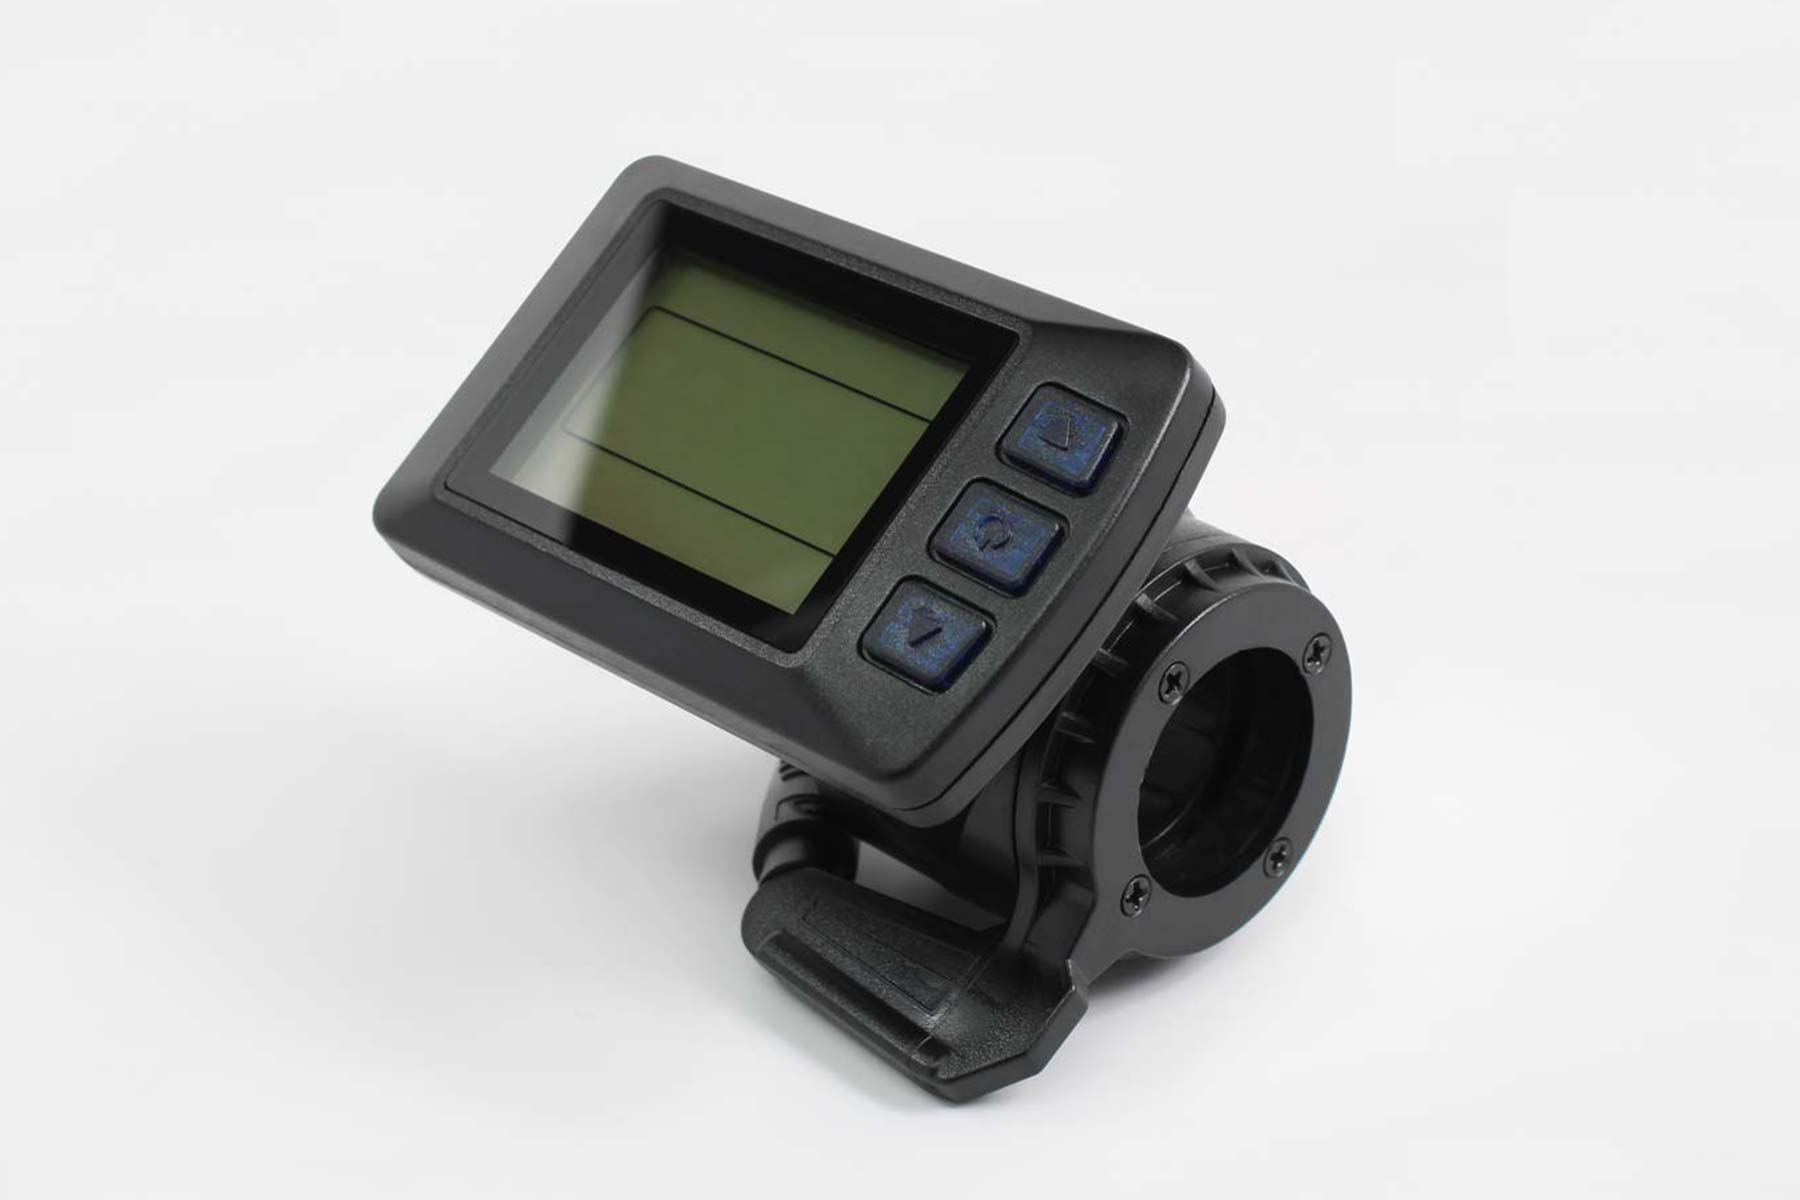 Replacement LCD DIsplay/Throttle for Rover GEN2 model